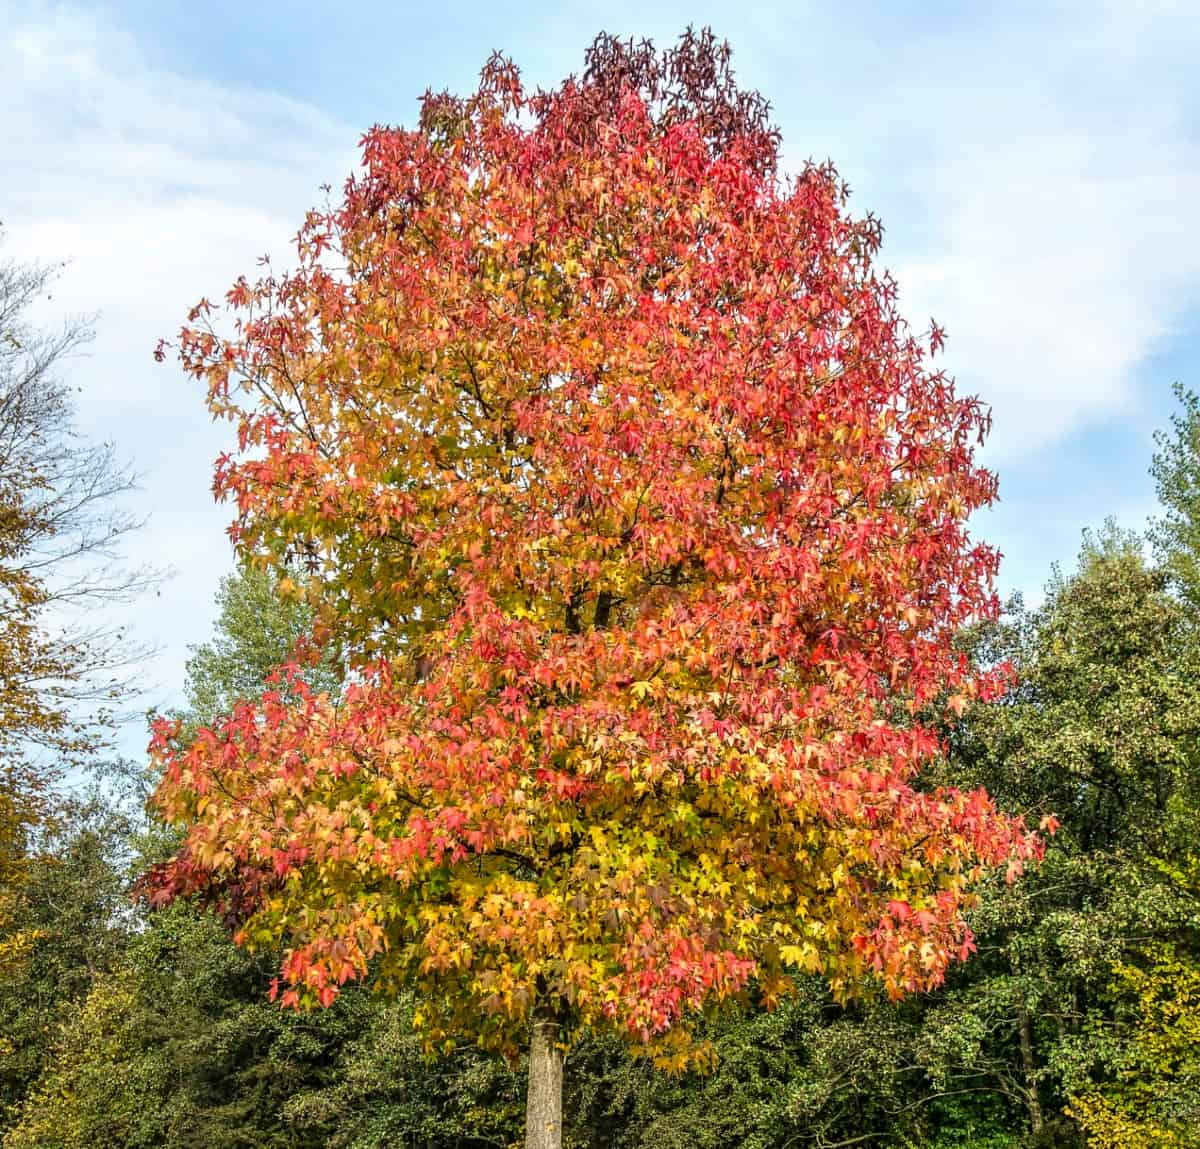 Red is only one color of the American sweetgum tree's leaves.